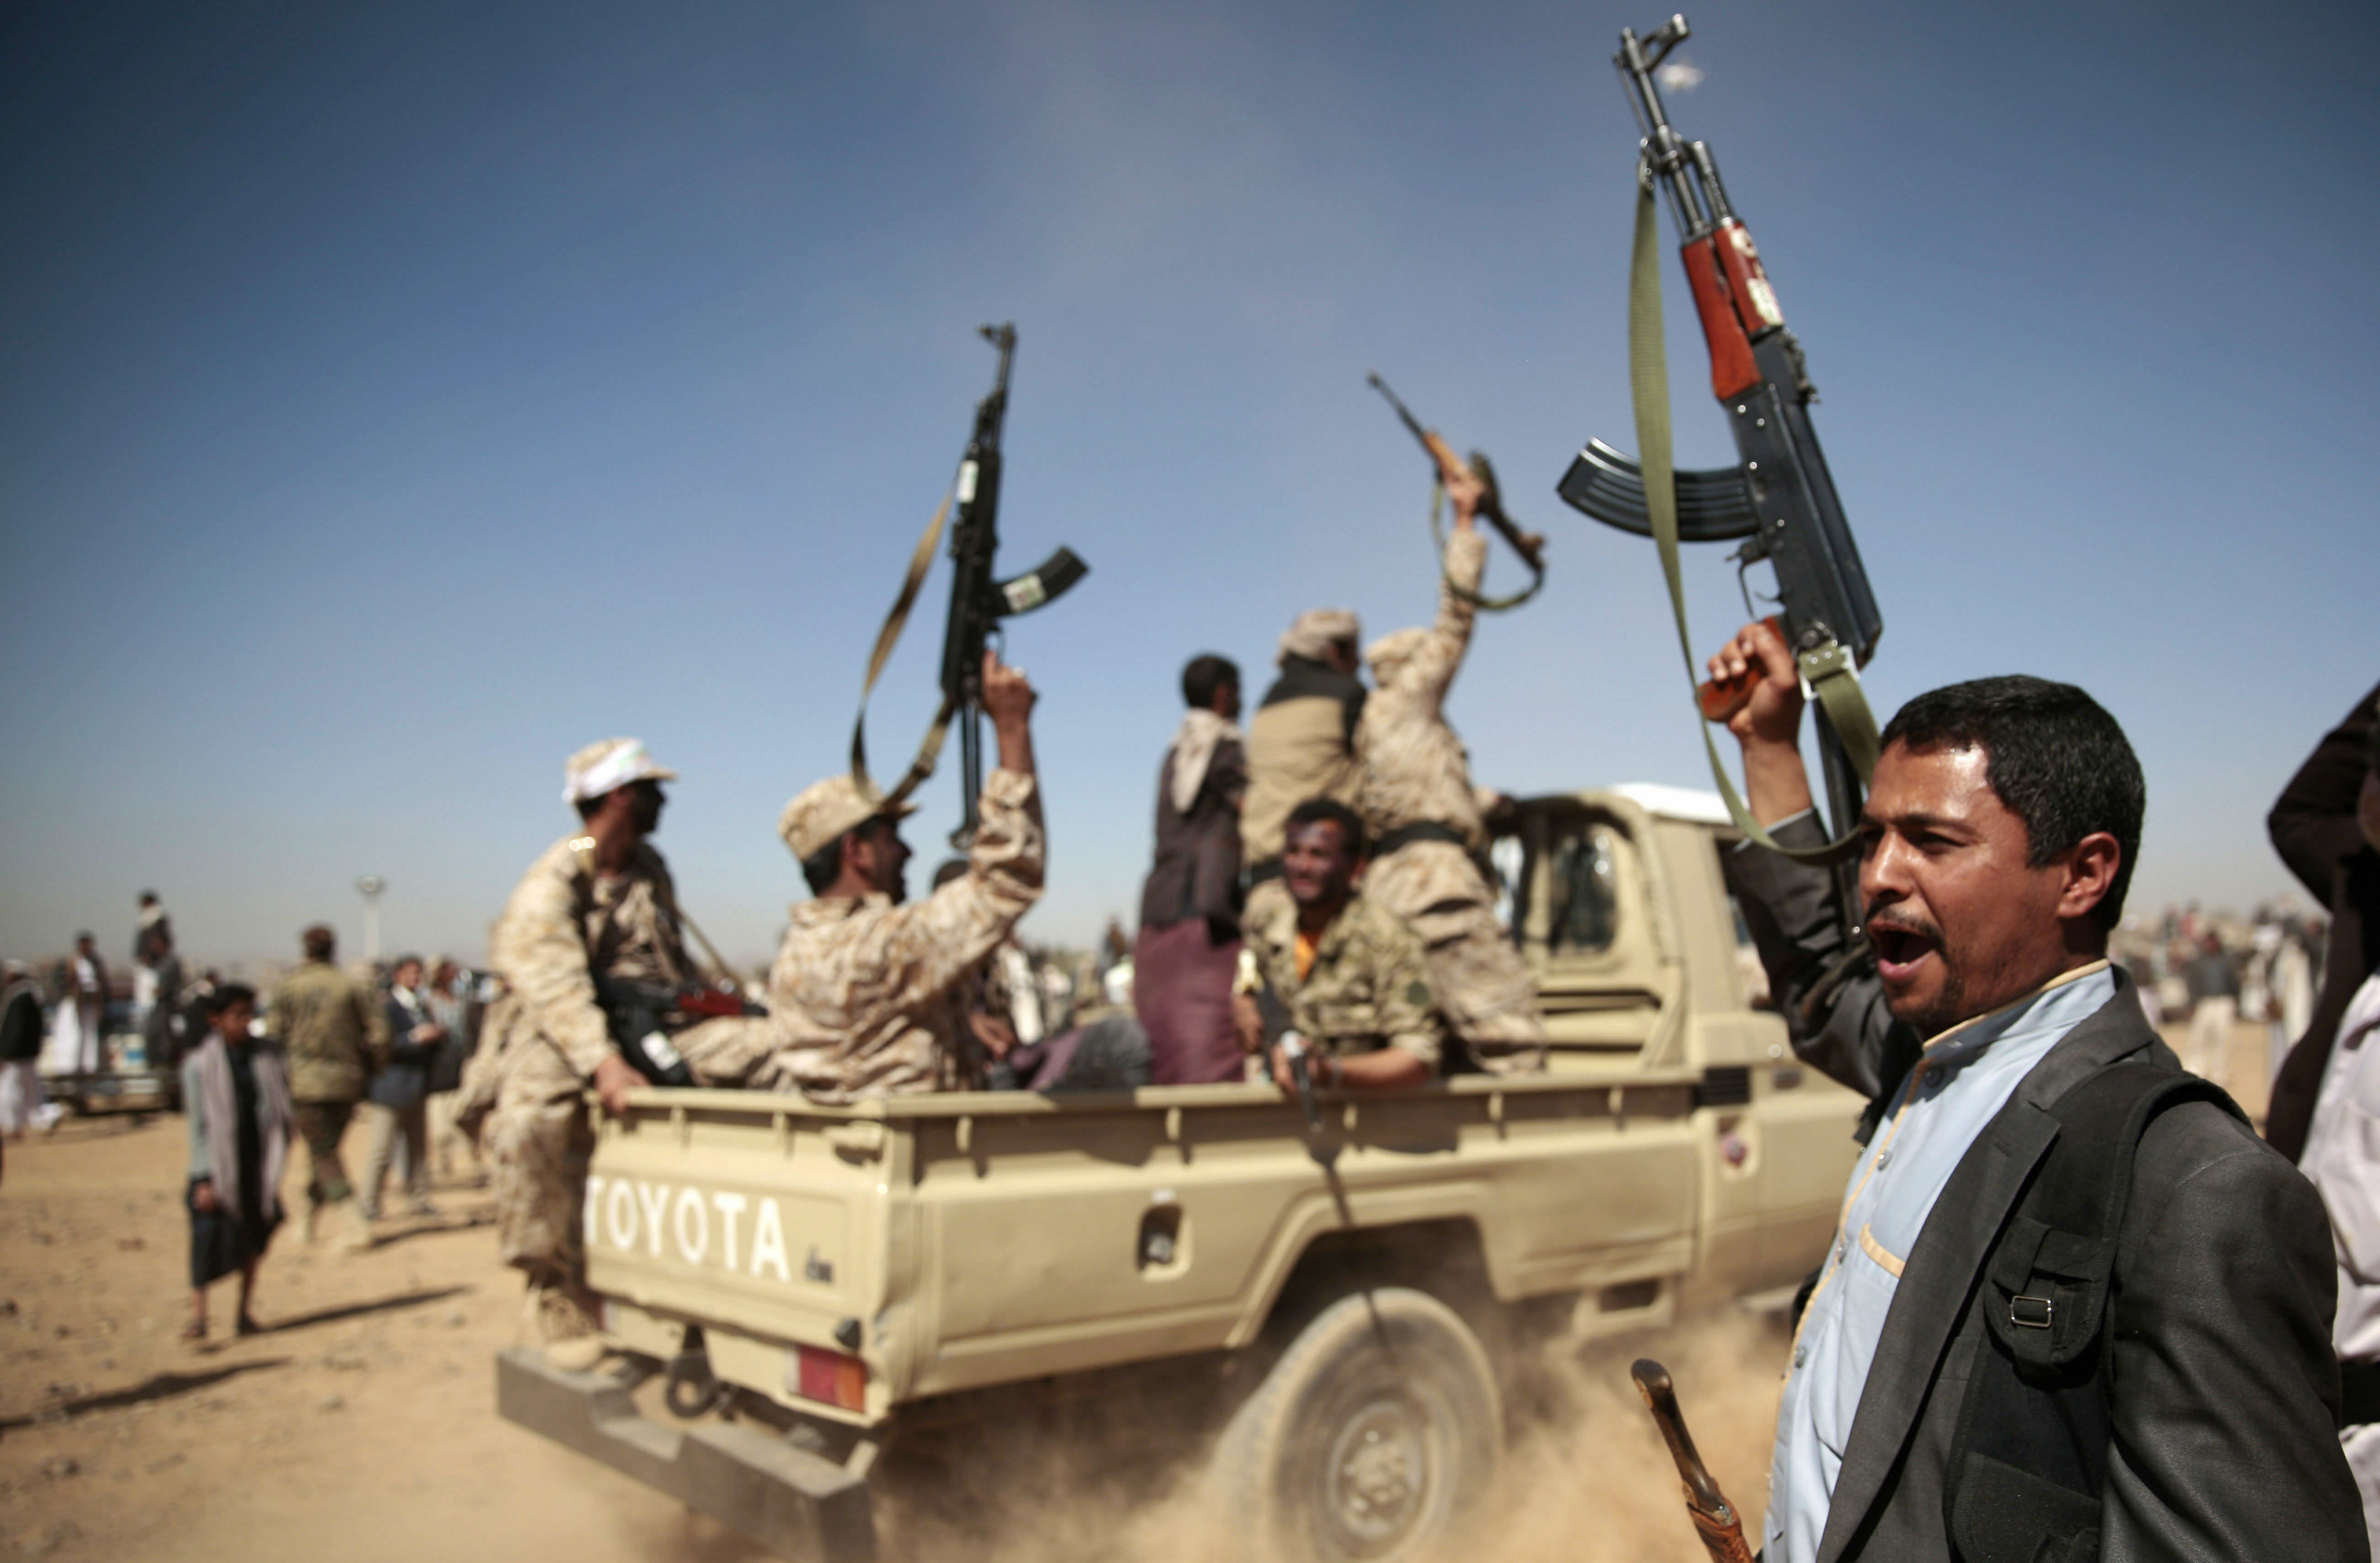 FILE - In this Jan. 3, 2017 file photo, tribesmen loyal to Houthi rebels chant slogans during a gathering aimed at mobilizing more fighters into battlefronts to fight pro-government forces, in Sanaa, Yemen. Moroccan government officials said Thursday Feb. 7, 2019 that Morocco has stopped taking part in military action with the Saudi-led coalition in Yemen's war, and has recalled its ambassador to Saudi Arabia. (AP Photo/Hani Mohammed, File)